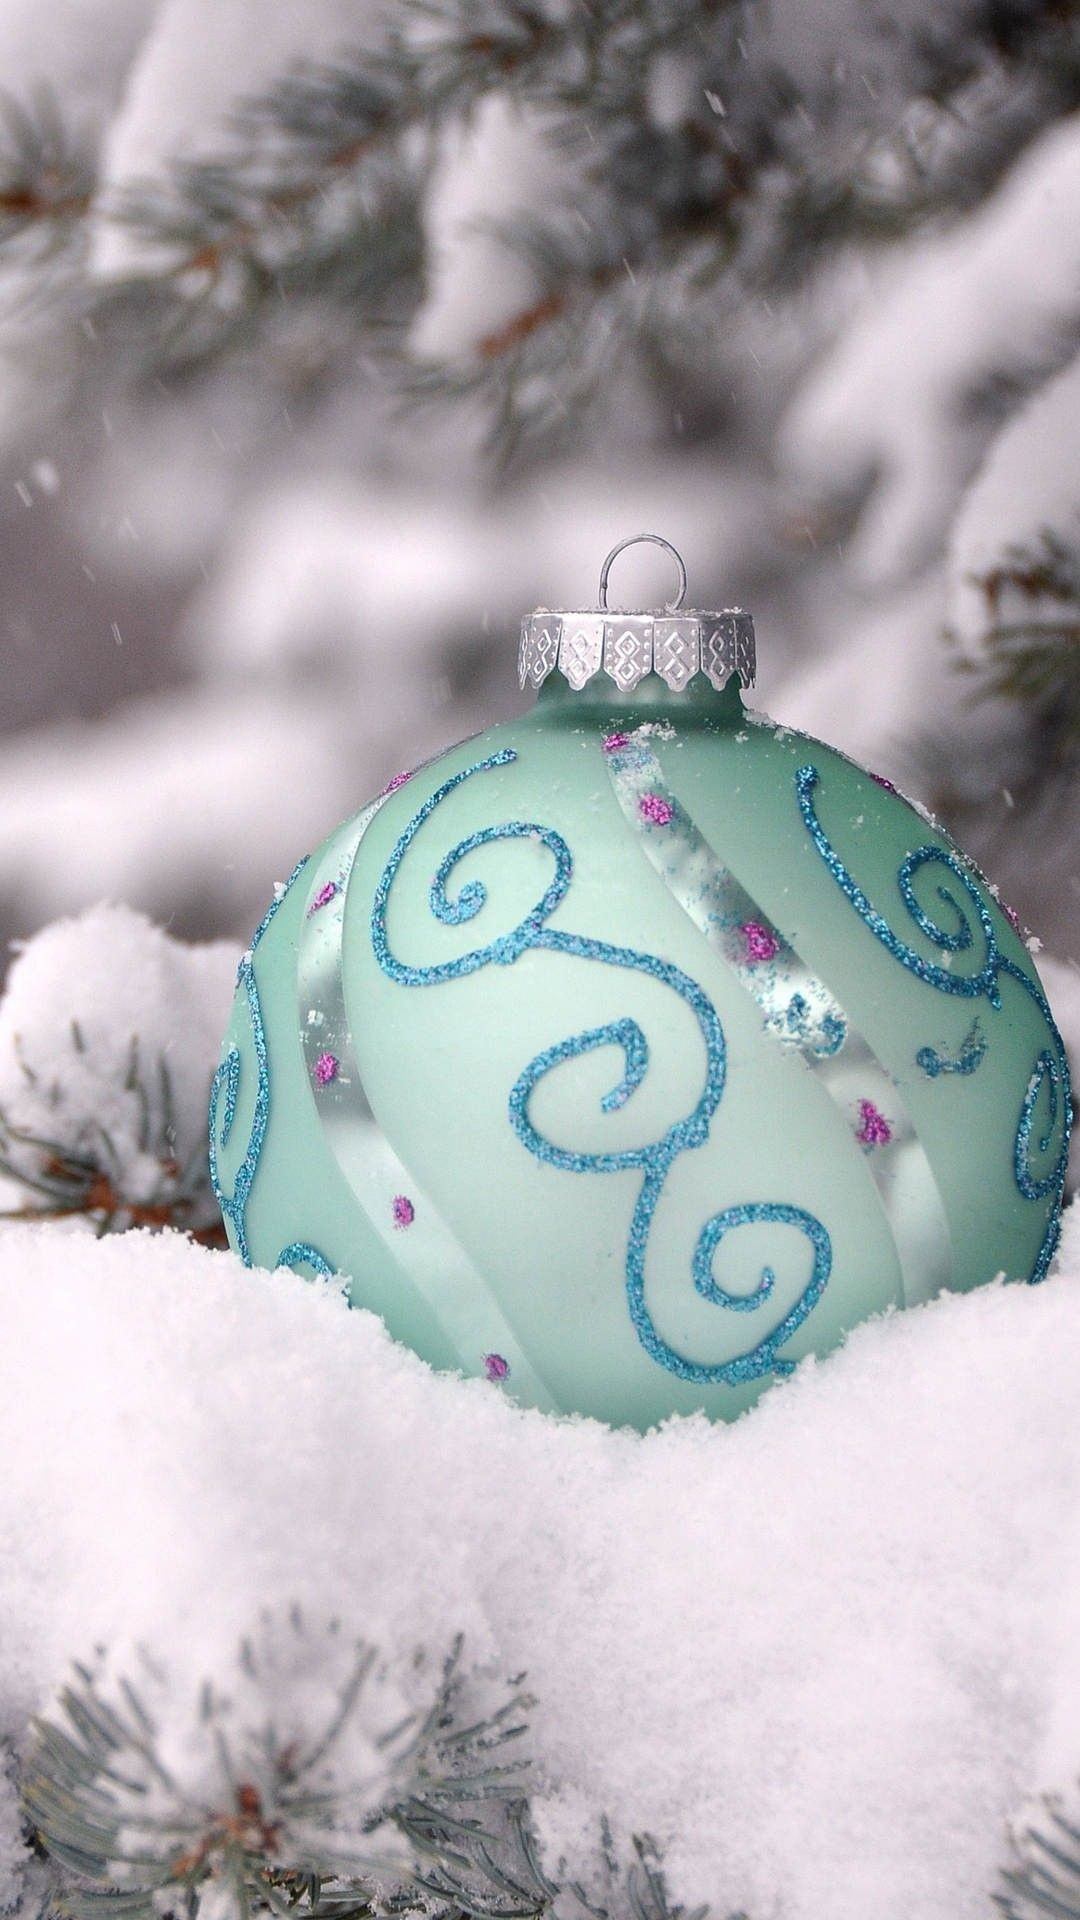 Frozen Themed Christmas Tree Floating Ornament Iphone - Lock Screen Christmas Wallpaper Iphone - HD Wallpaper